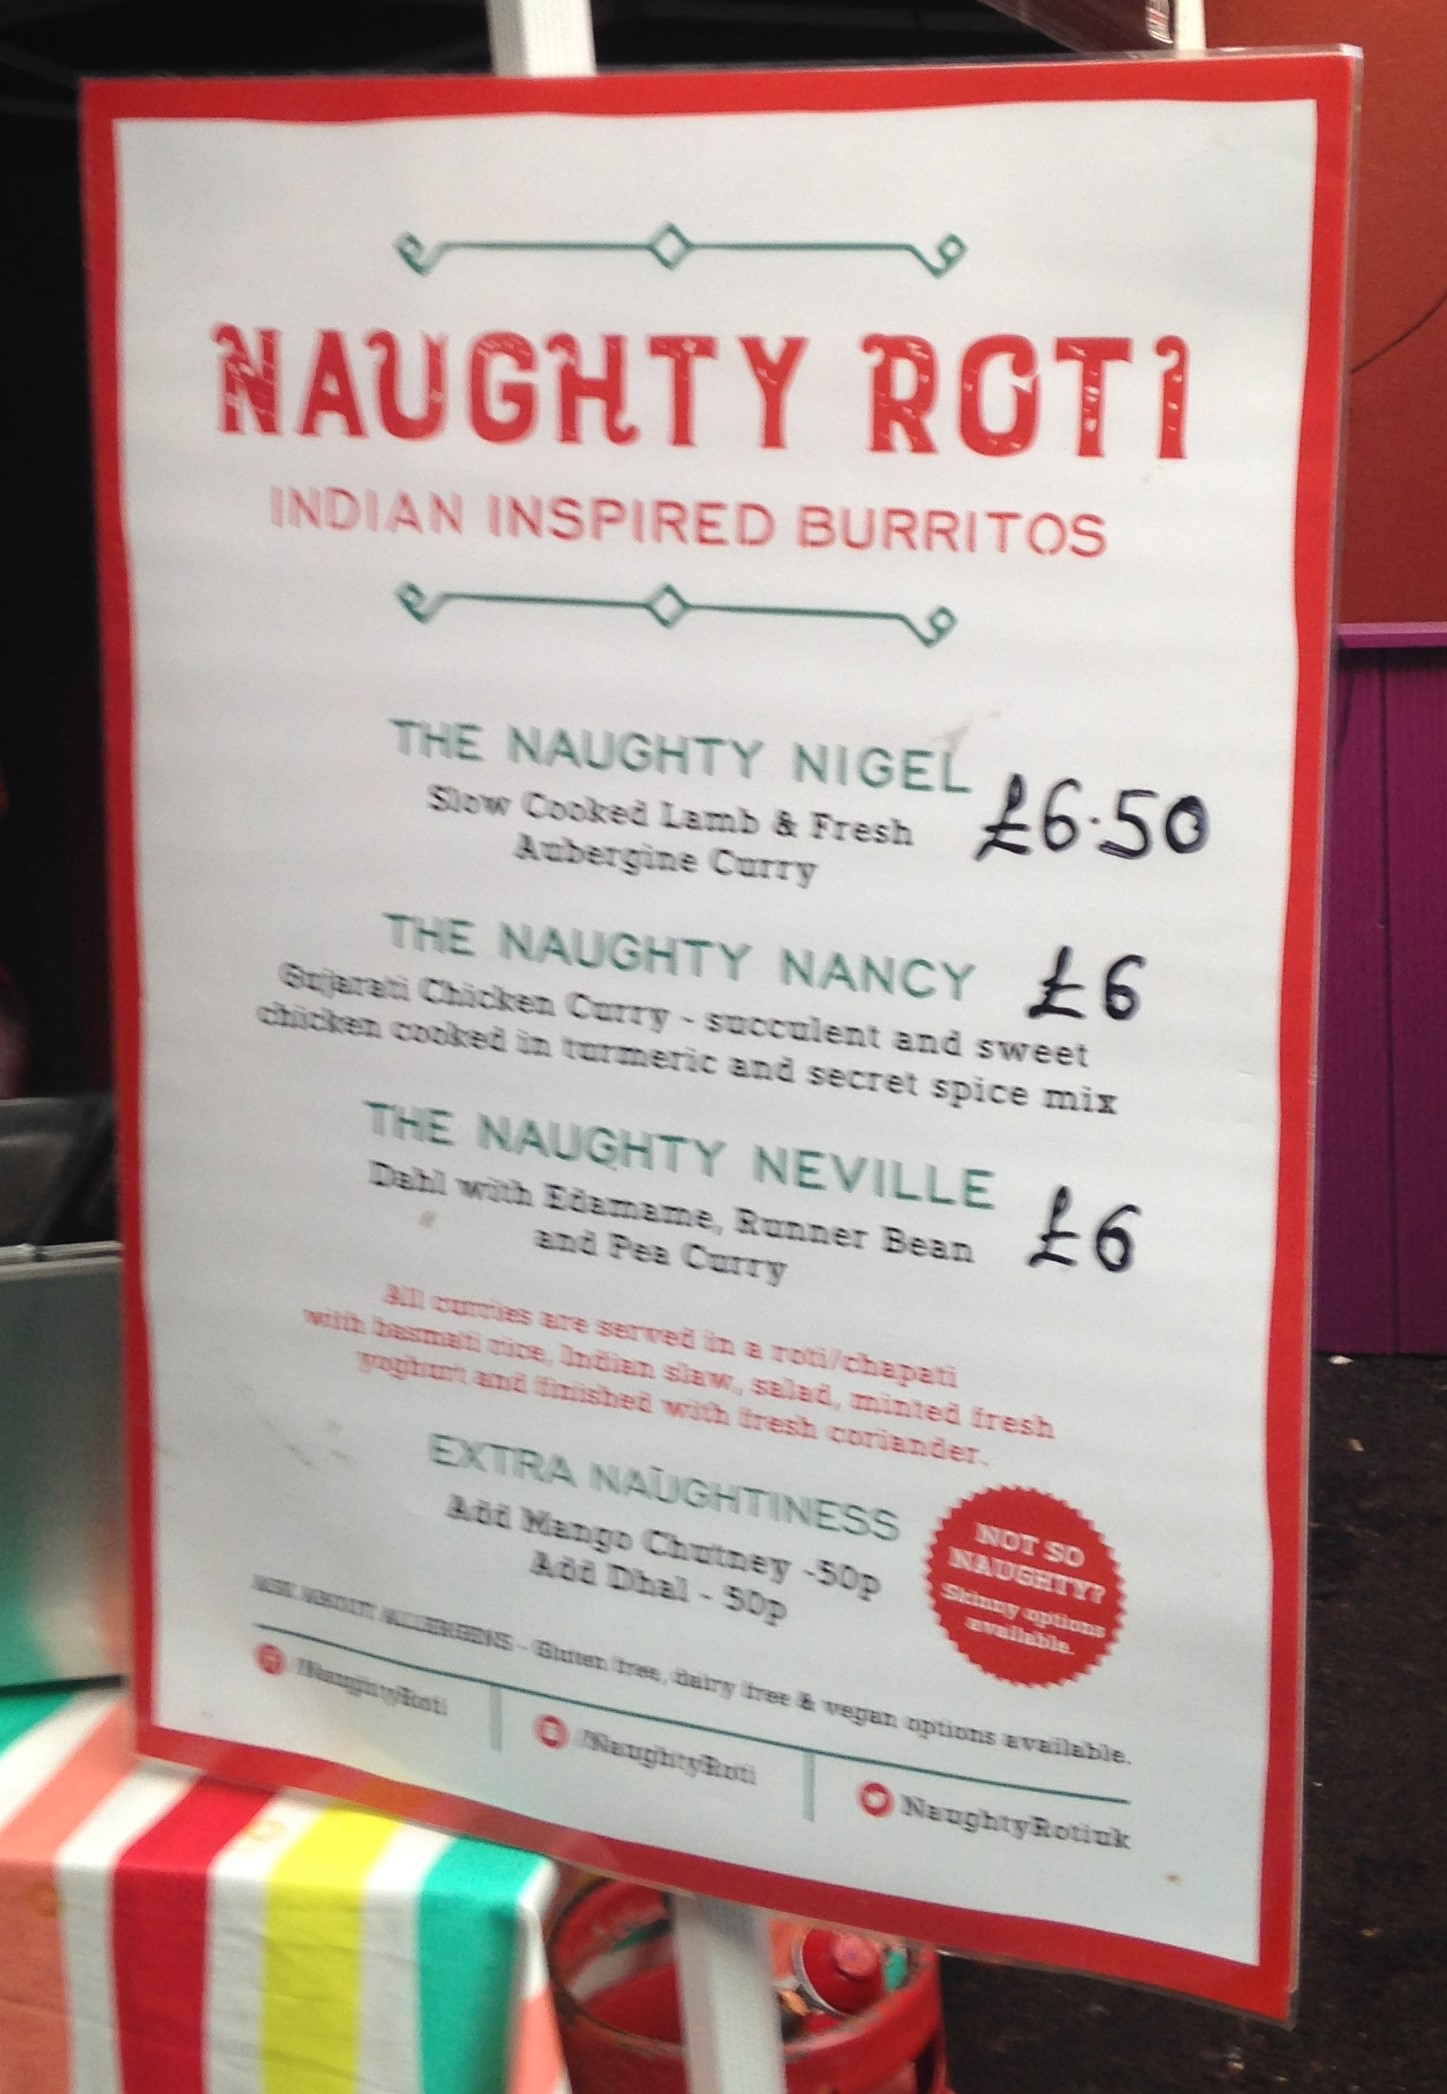 Naughty Roti - Indian inspired burritos